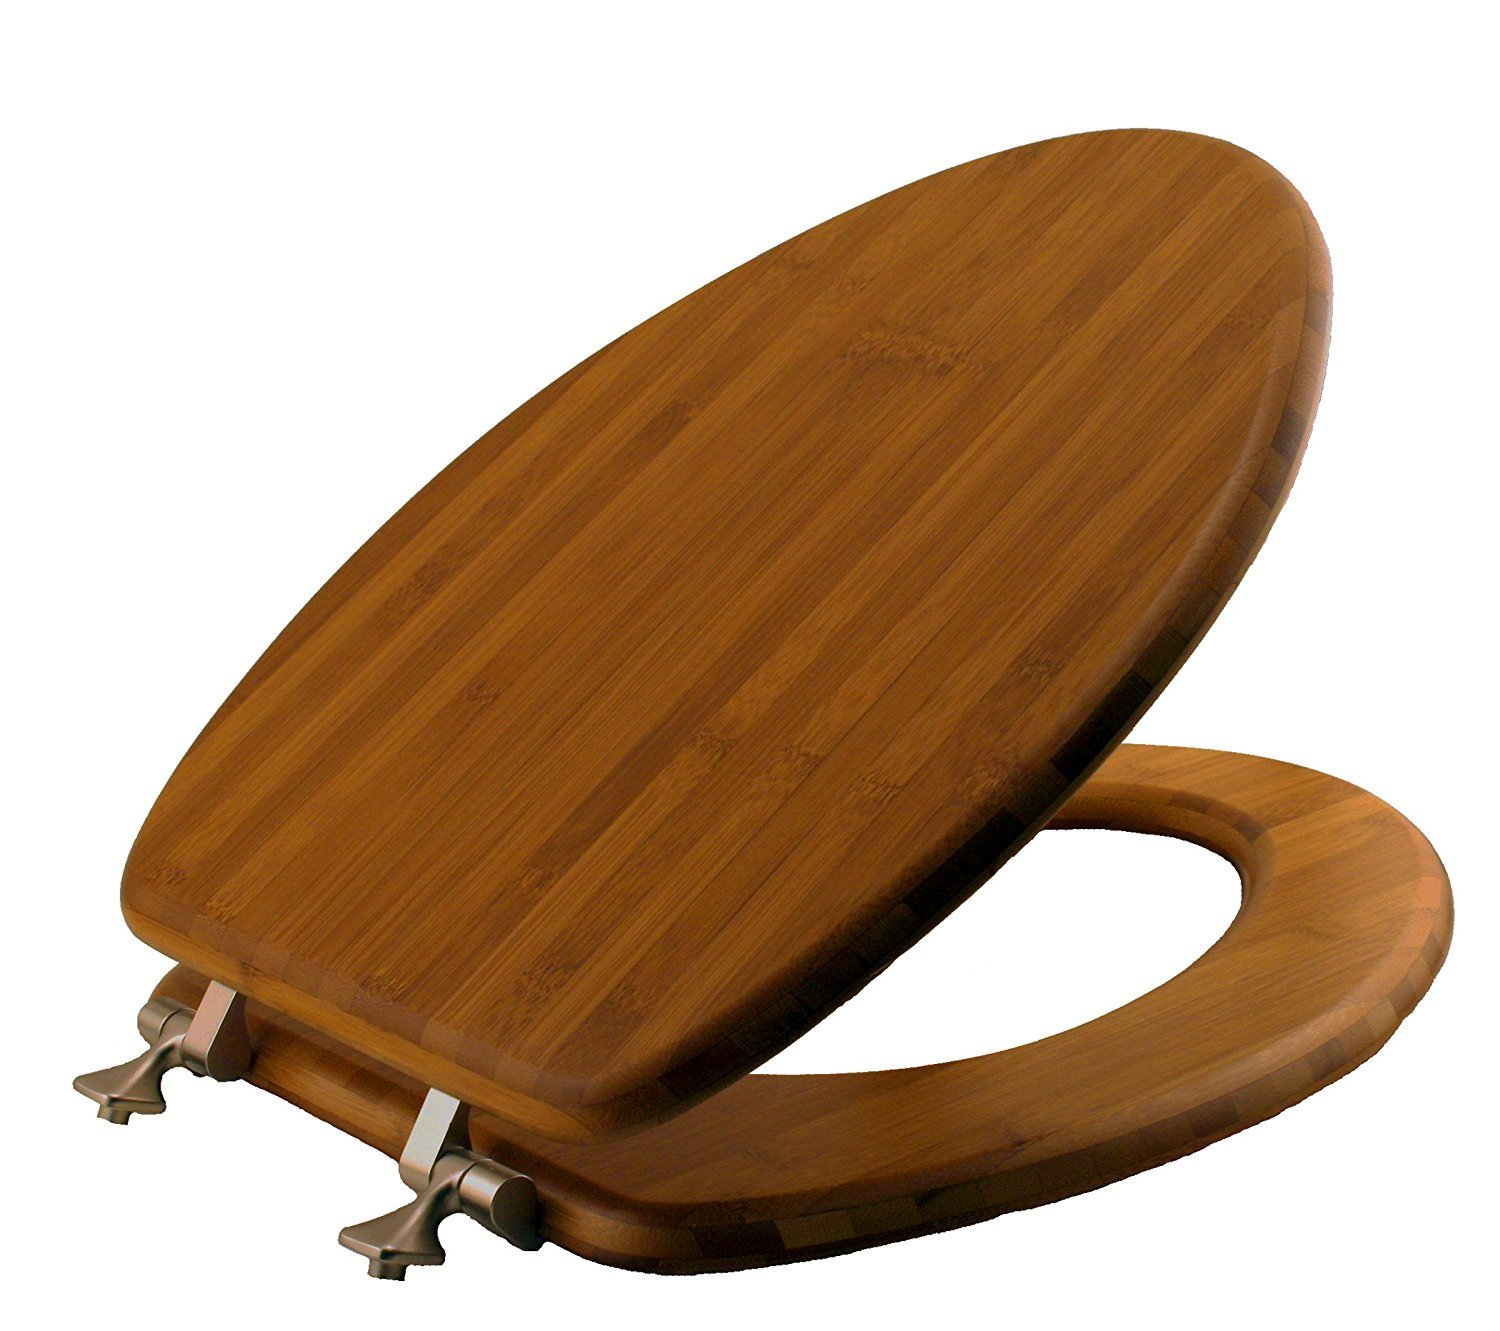 Mayfair Solid Bamboo Toilet Seat with Brushed Nickel Hinges, Elongated, Dark Bamboo, 19401NI 568